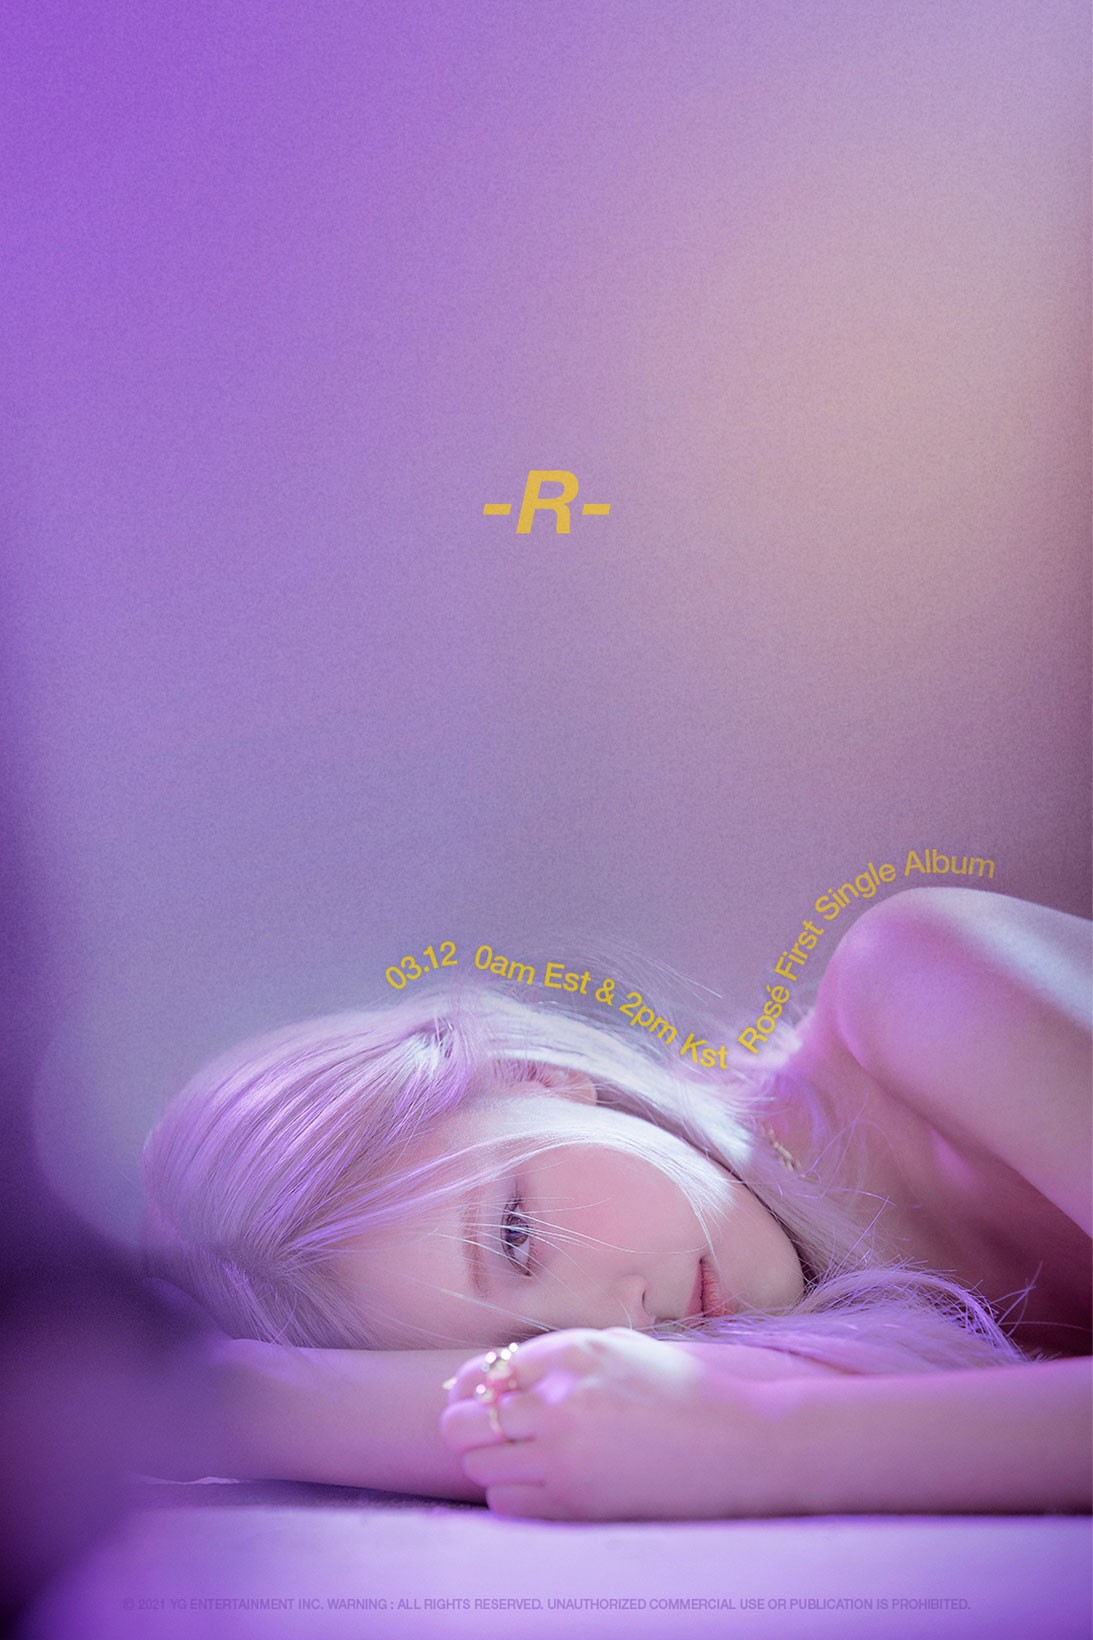 BLACKPINK Rosé Solo Debut Album -R- On The Ground Music Video Teaser Poster K-Pop Girl Group Member Korean Celebrity Singer Artist